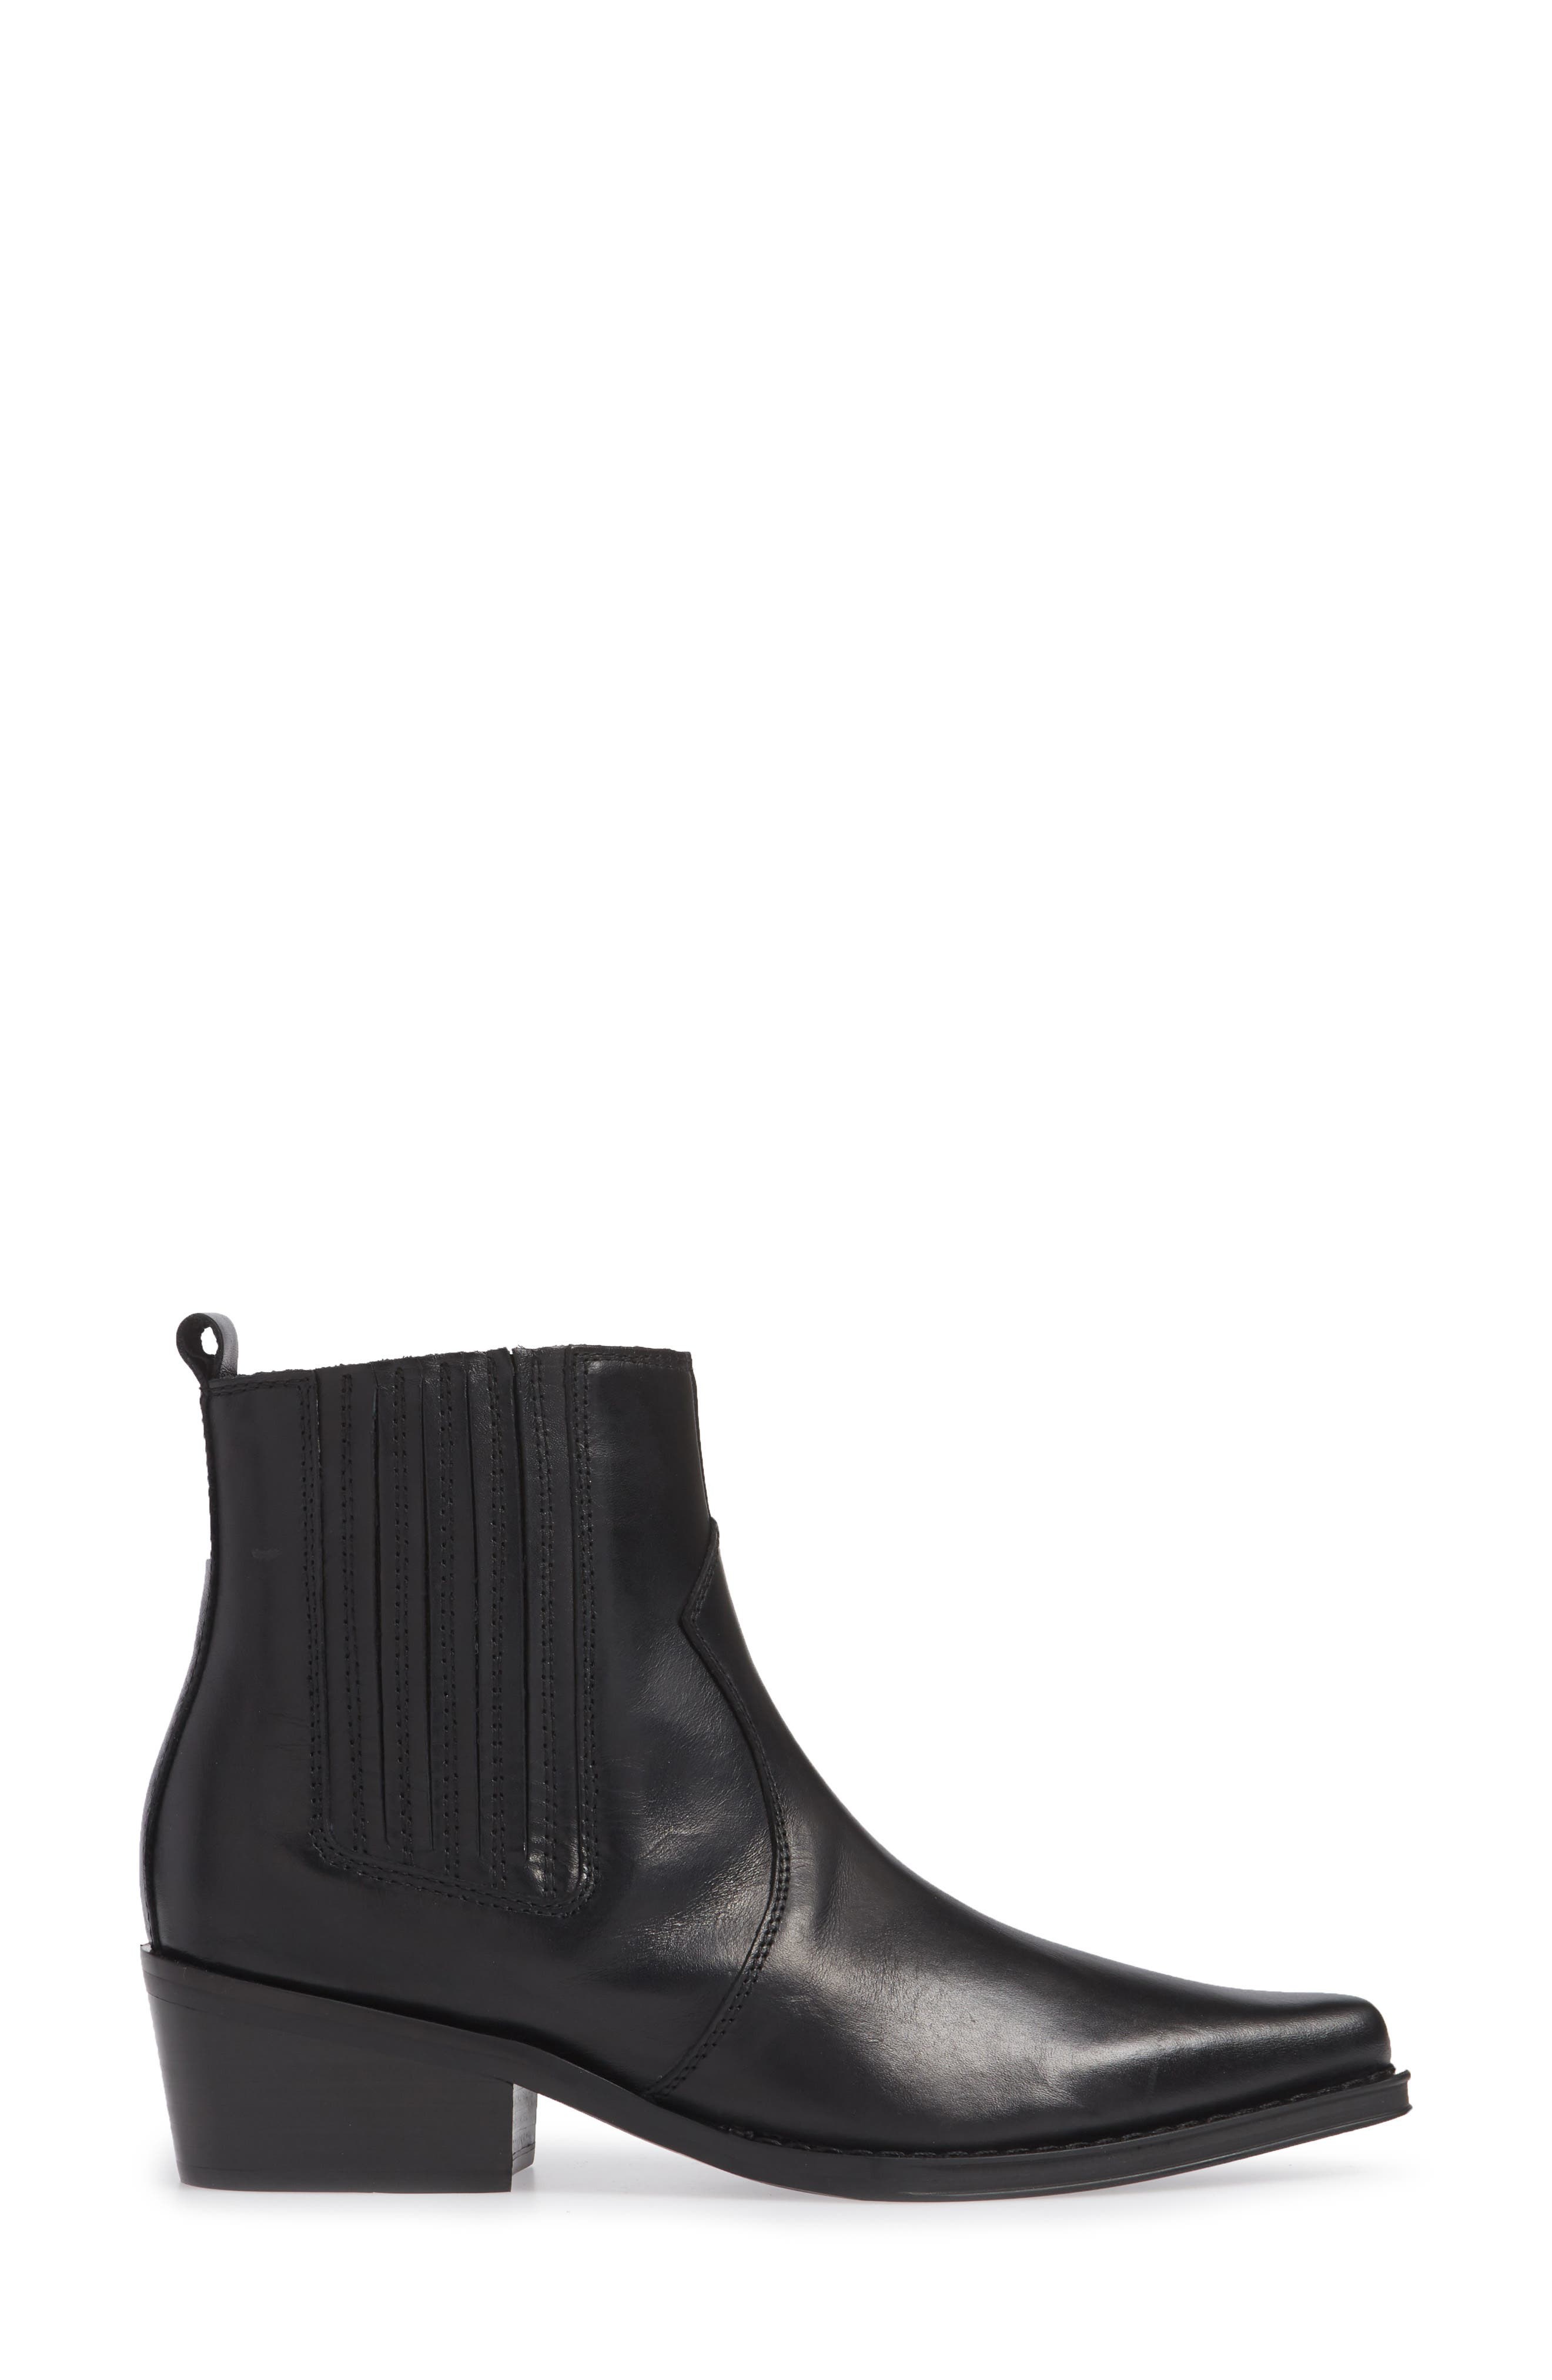 Barbara Bootie,                             Alternate thumbnail 3, color,                             BLACK LEATHER